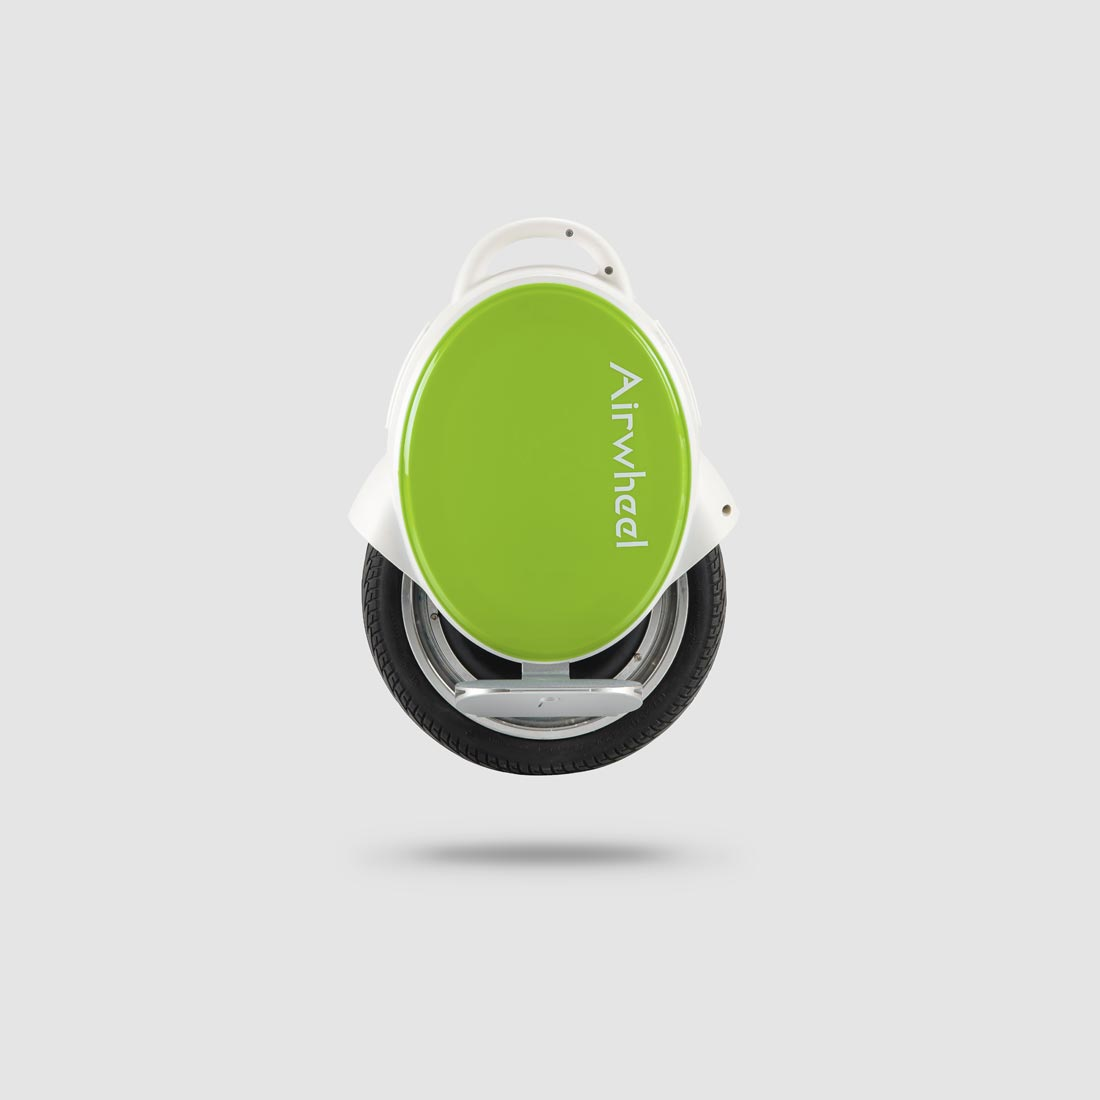 http://www.airwheel.net/scooter/Airwheel_Q5_i.jpg